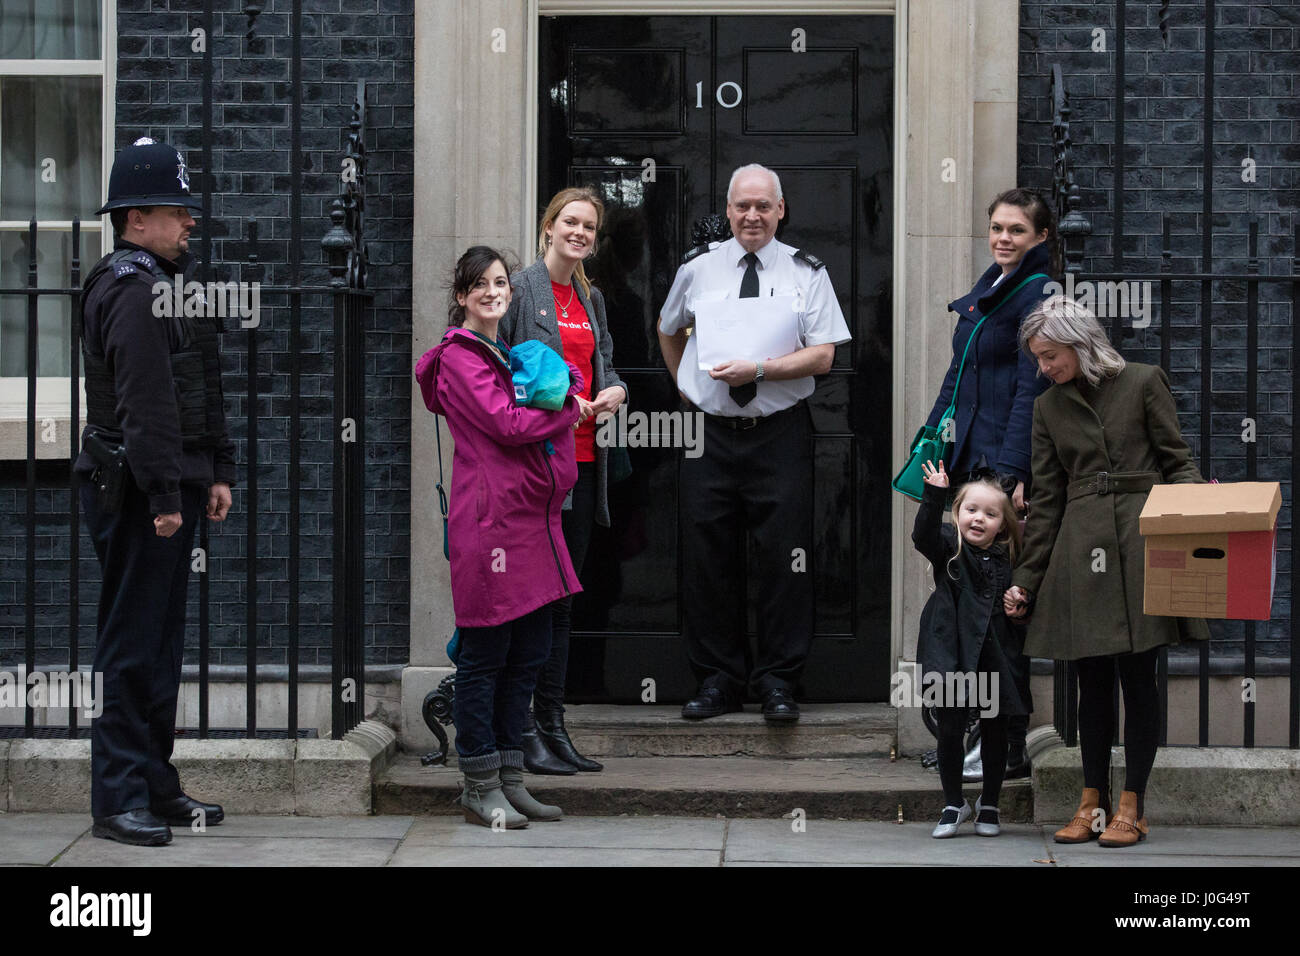 London, UK. 22nd February, 2017. Campaigners from Save The Children present a petition at 10 Downing Street for - Stock Image